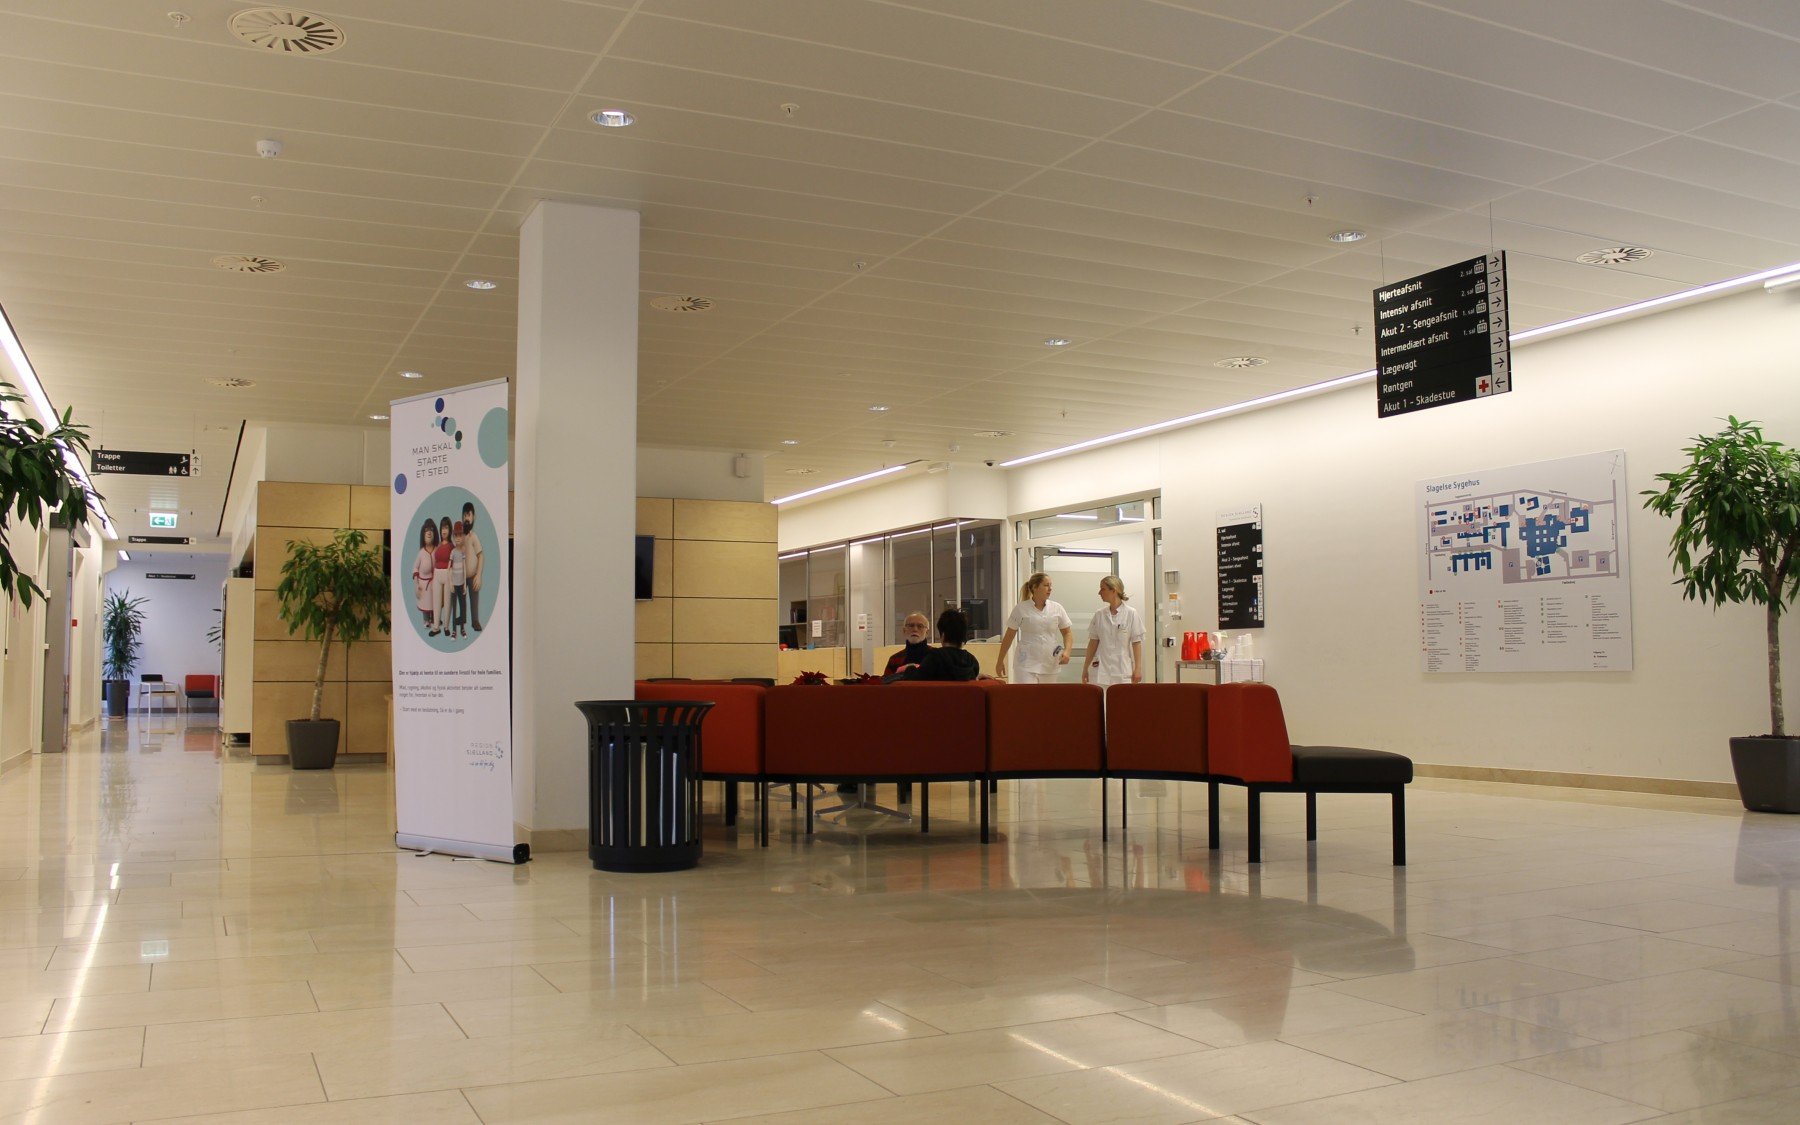 Panel, Hook-On Easy Access at Slagelse hospital, reception